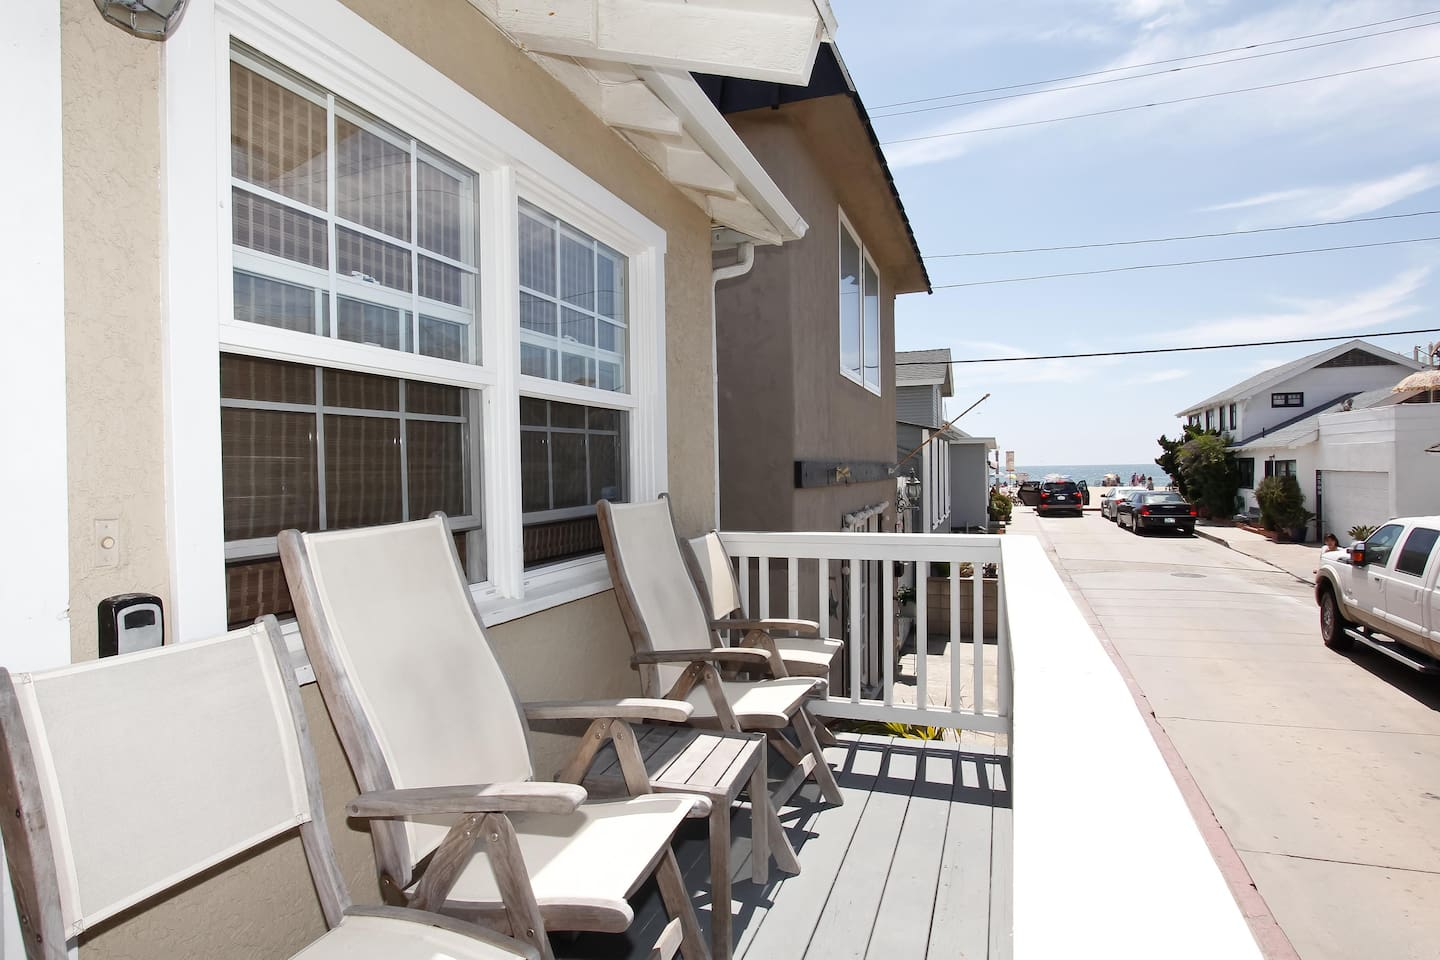 3 houses from the beach. Great Location